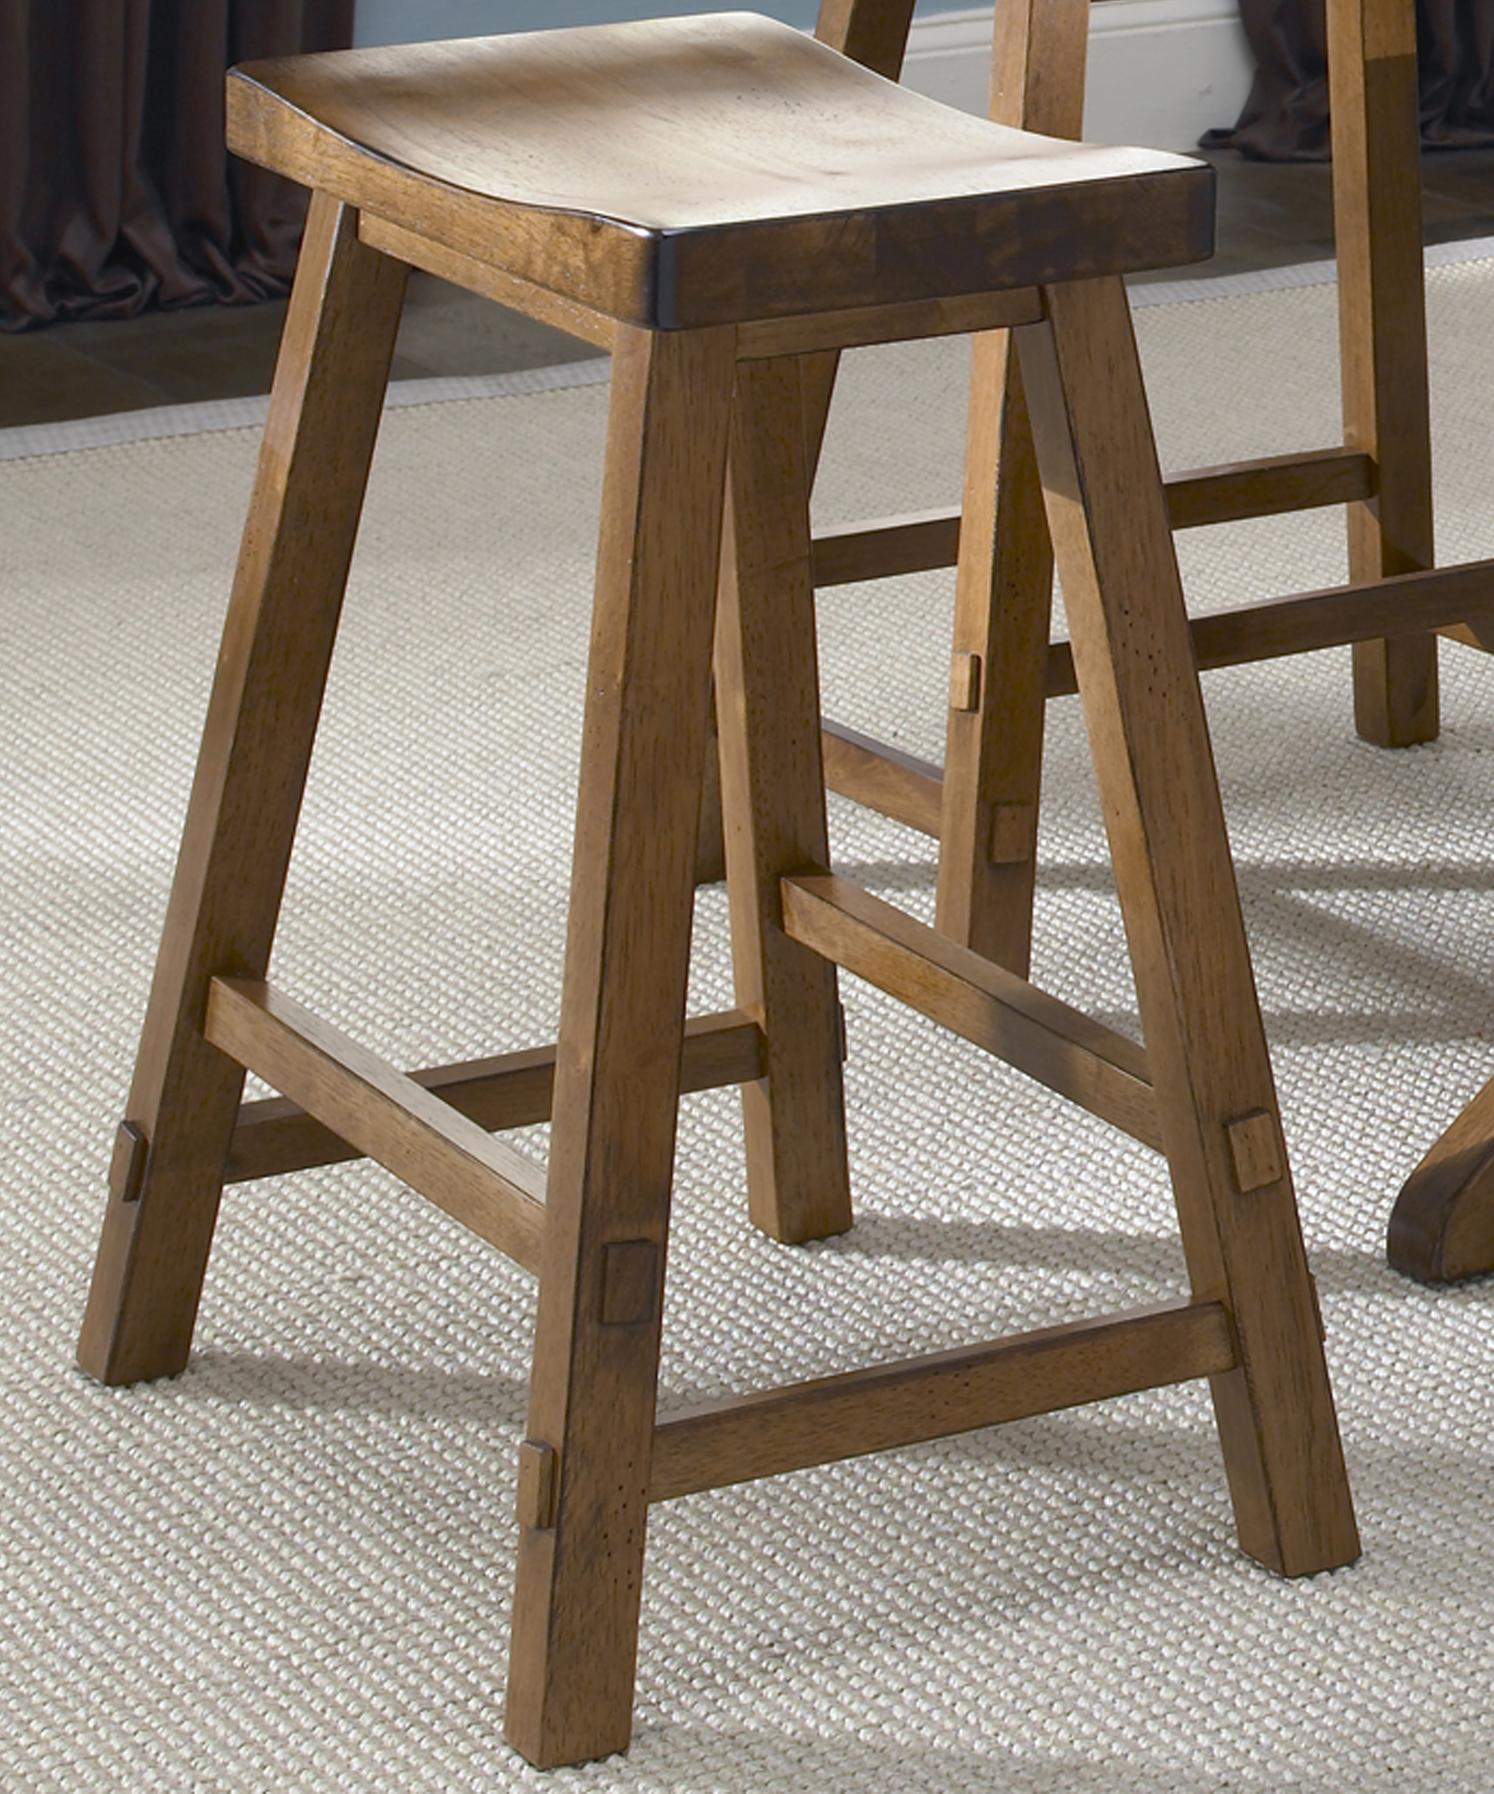 Creations II 30 Inch Sawhorse Barstool by Liberty Furniture at Lapeer Furniture & Mattress Center